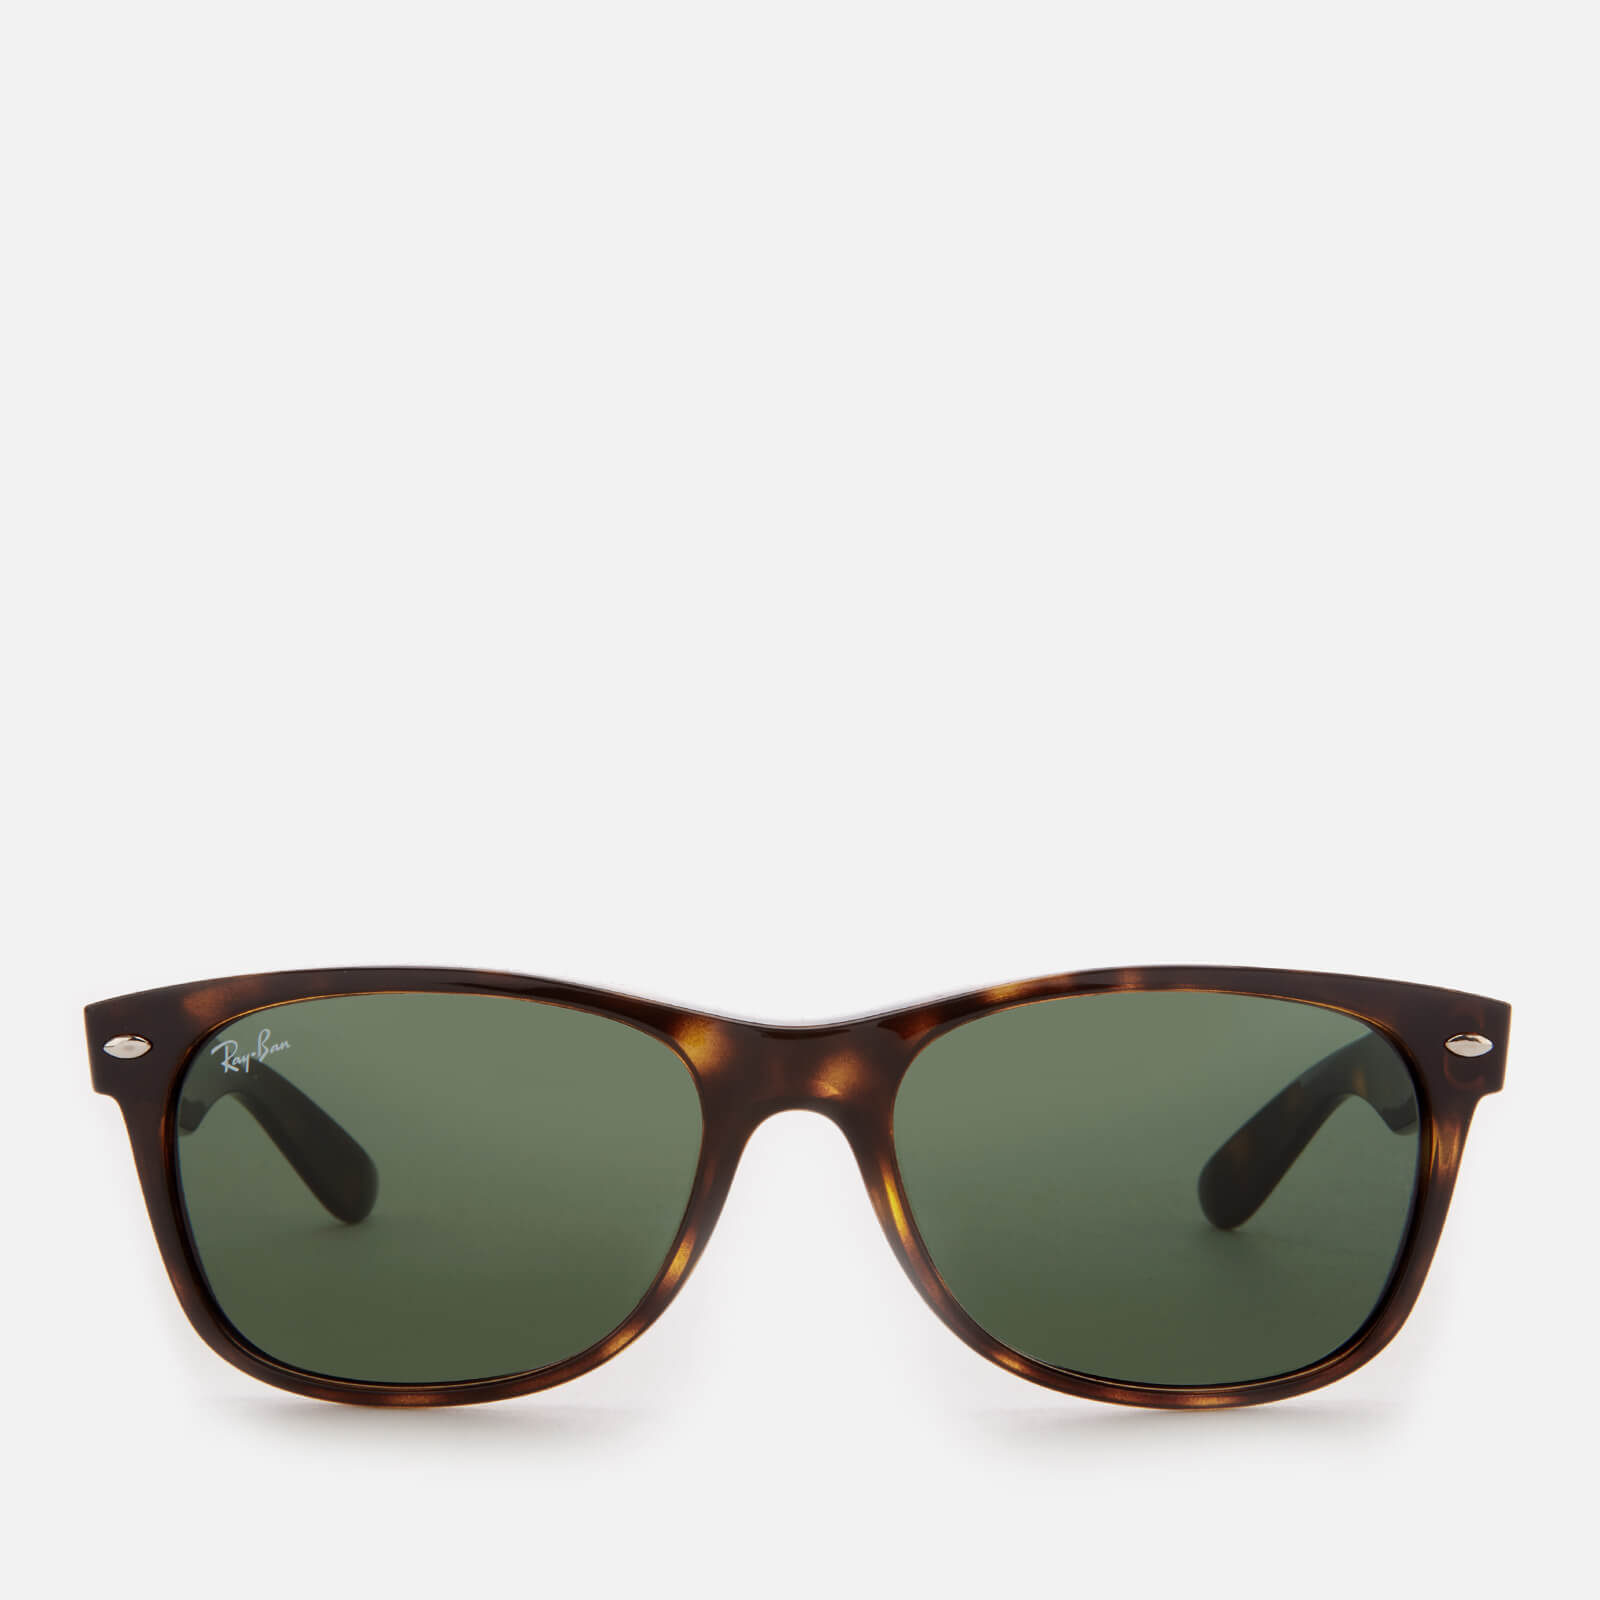 1b84f10571e9e Ray-Ban Men s New Wayfarer Sunglasses - Tortoise - Free UK Delivery over £50